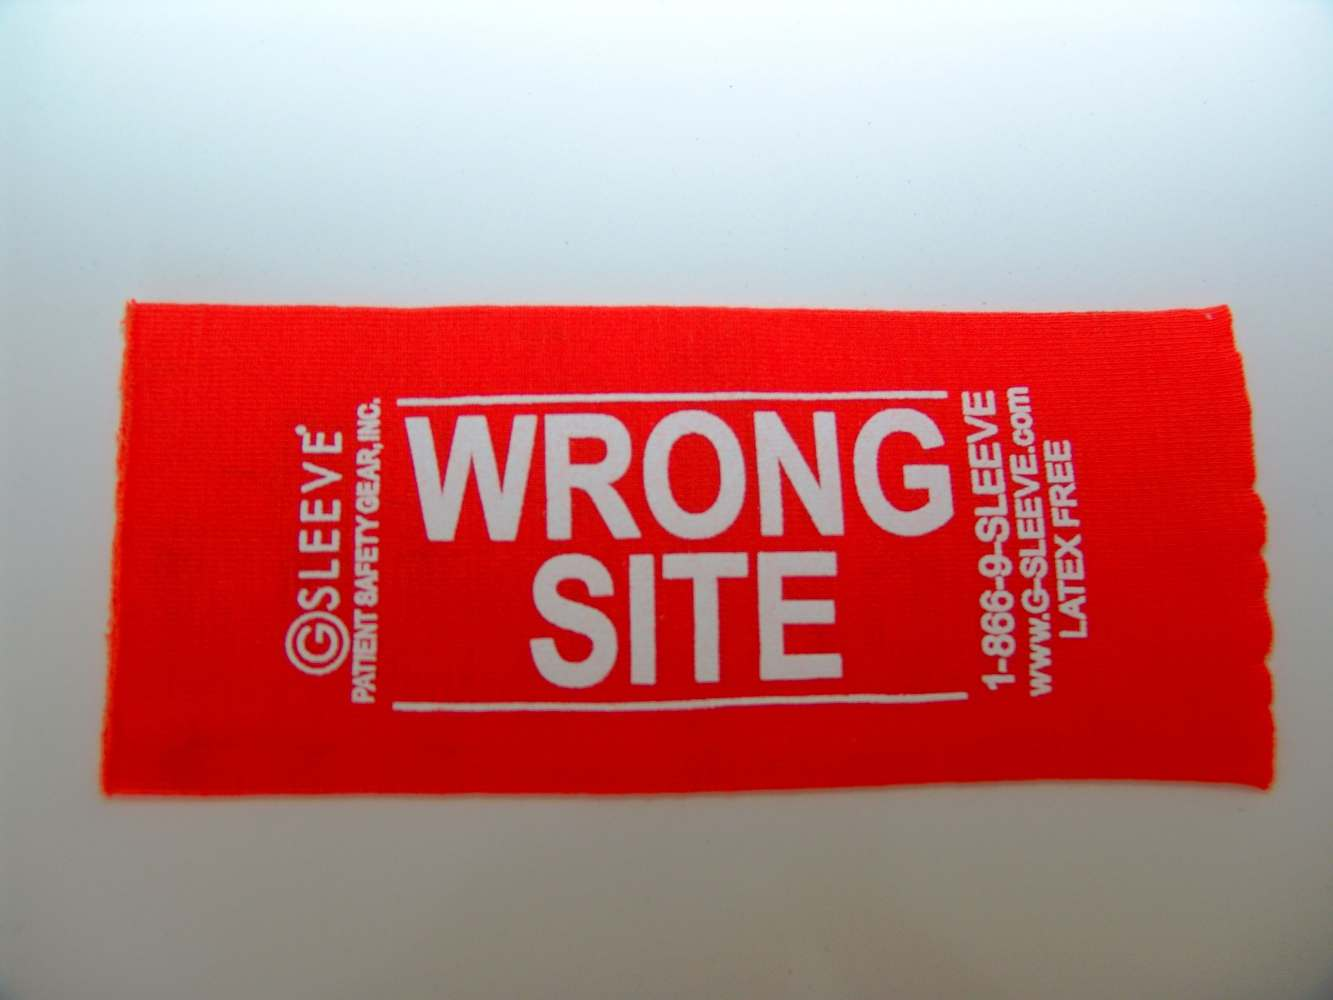 Patient Safety Gear WRONG SITE SLEEVE - ARM ORANGE, Box of 100 - Model GWS-04